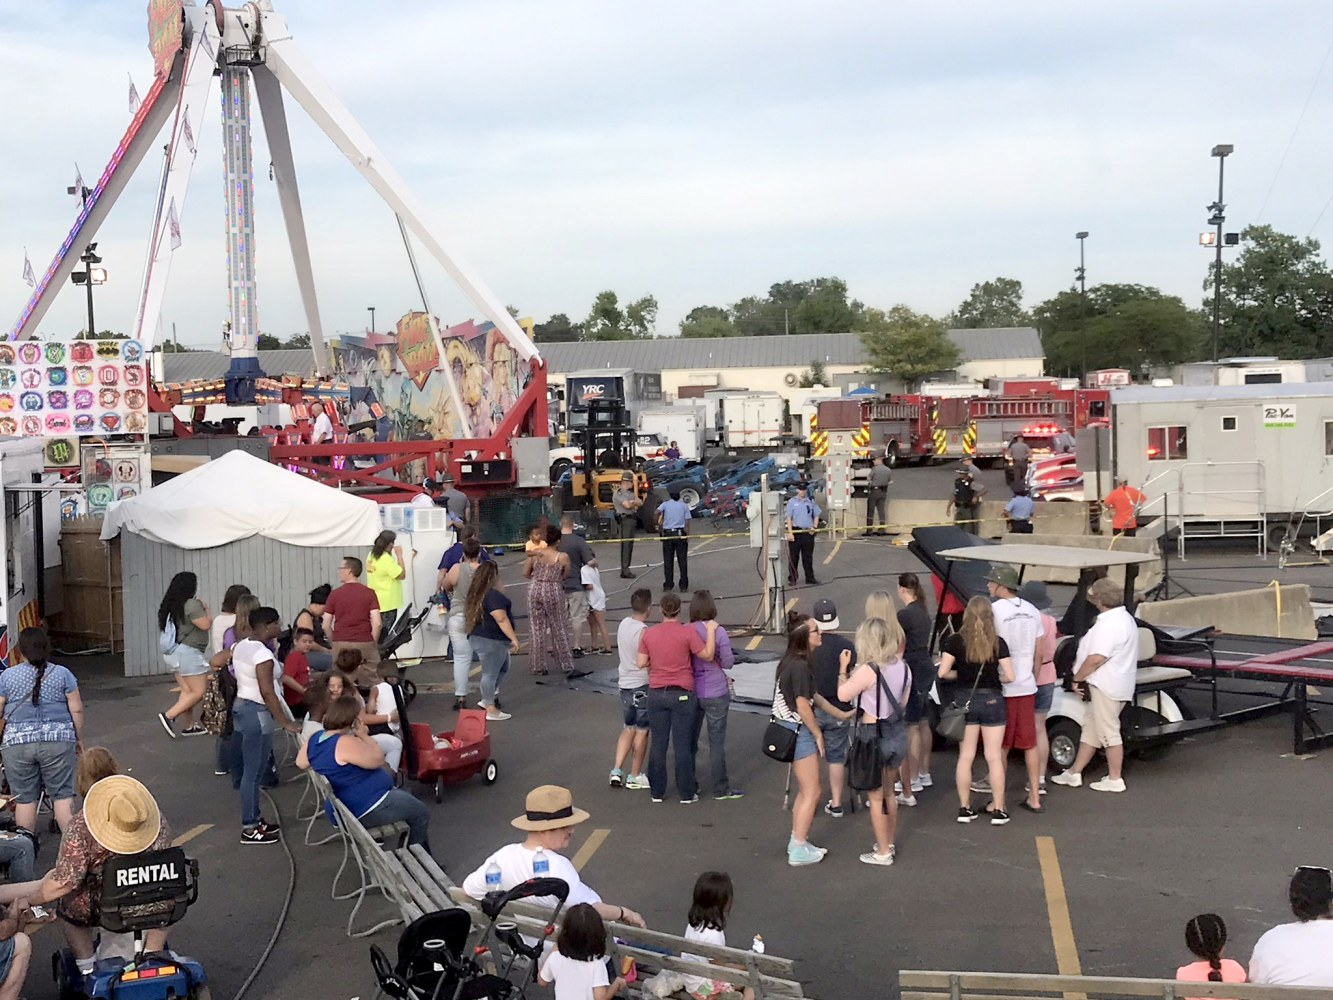 Ohio State Fair ride accident: 18-year-old killed, 7 injured identified